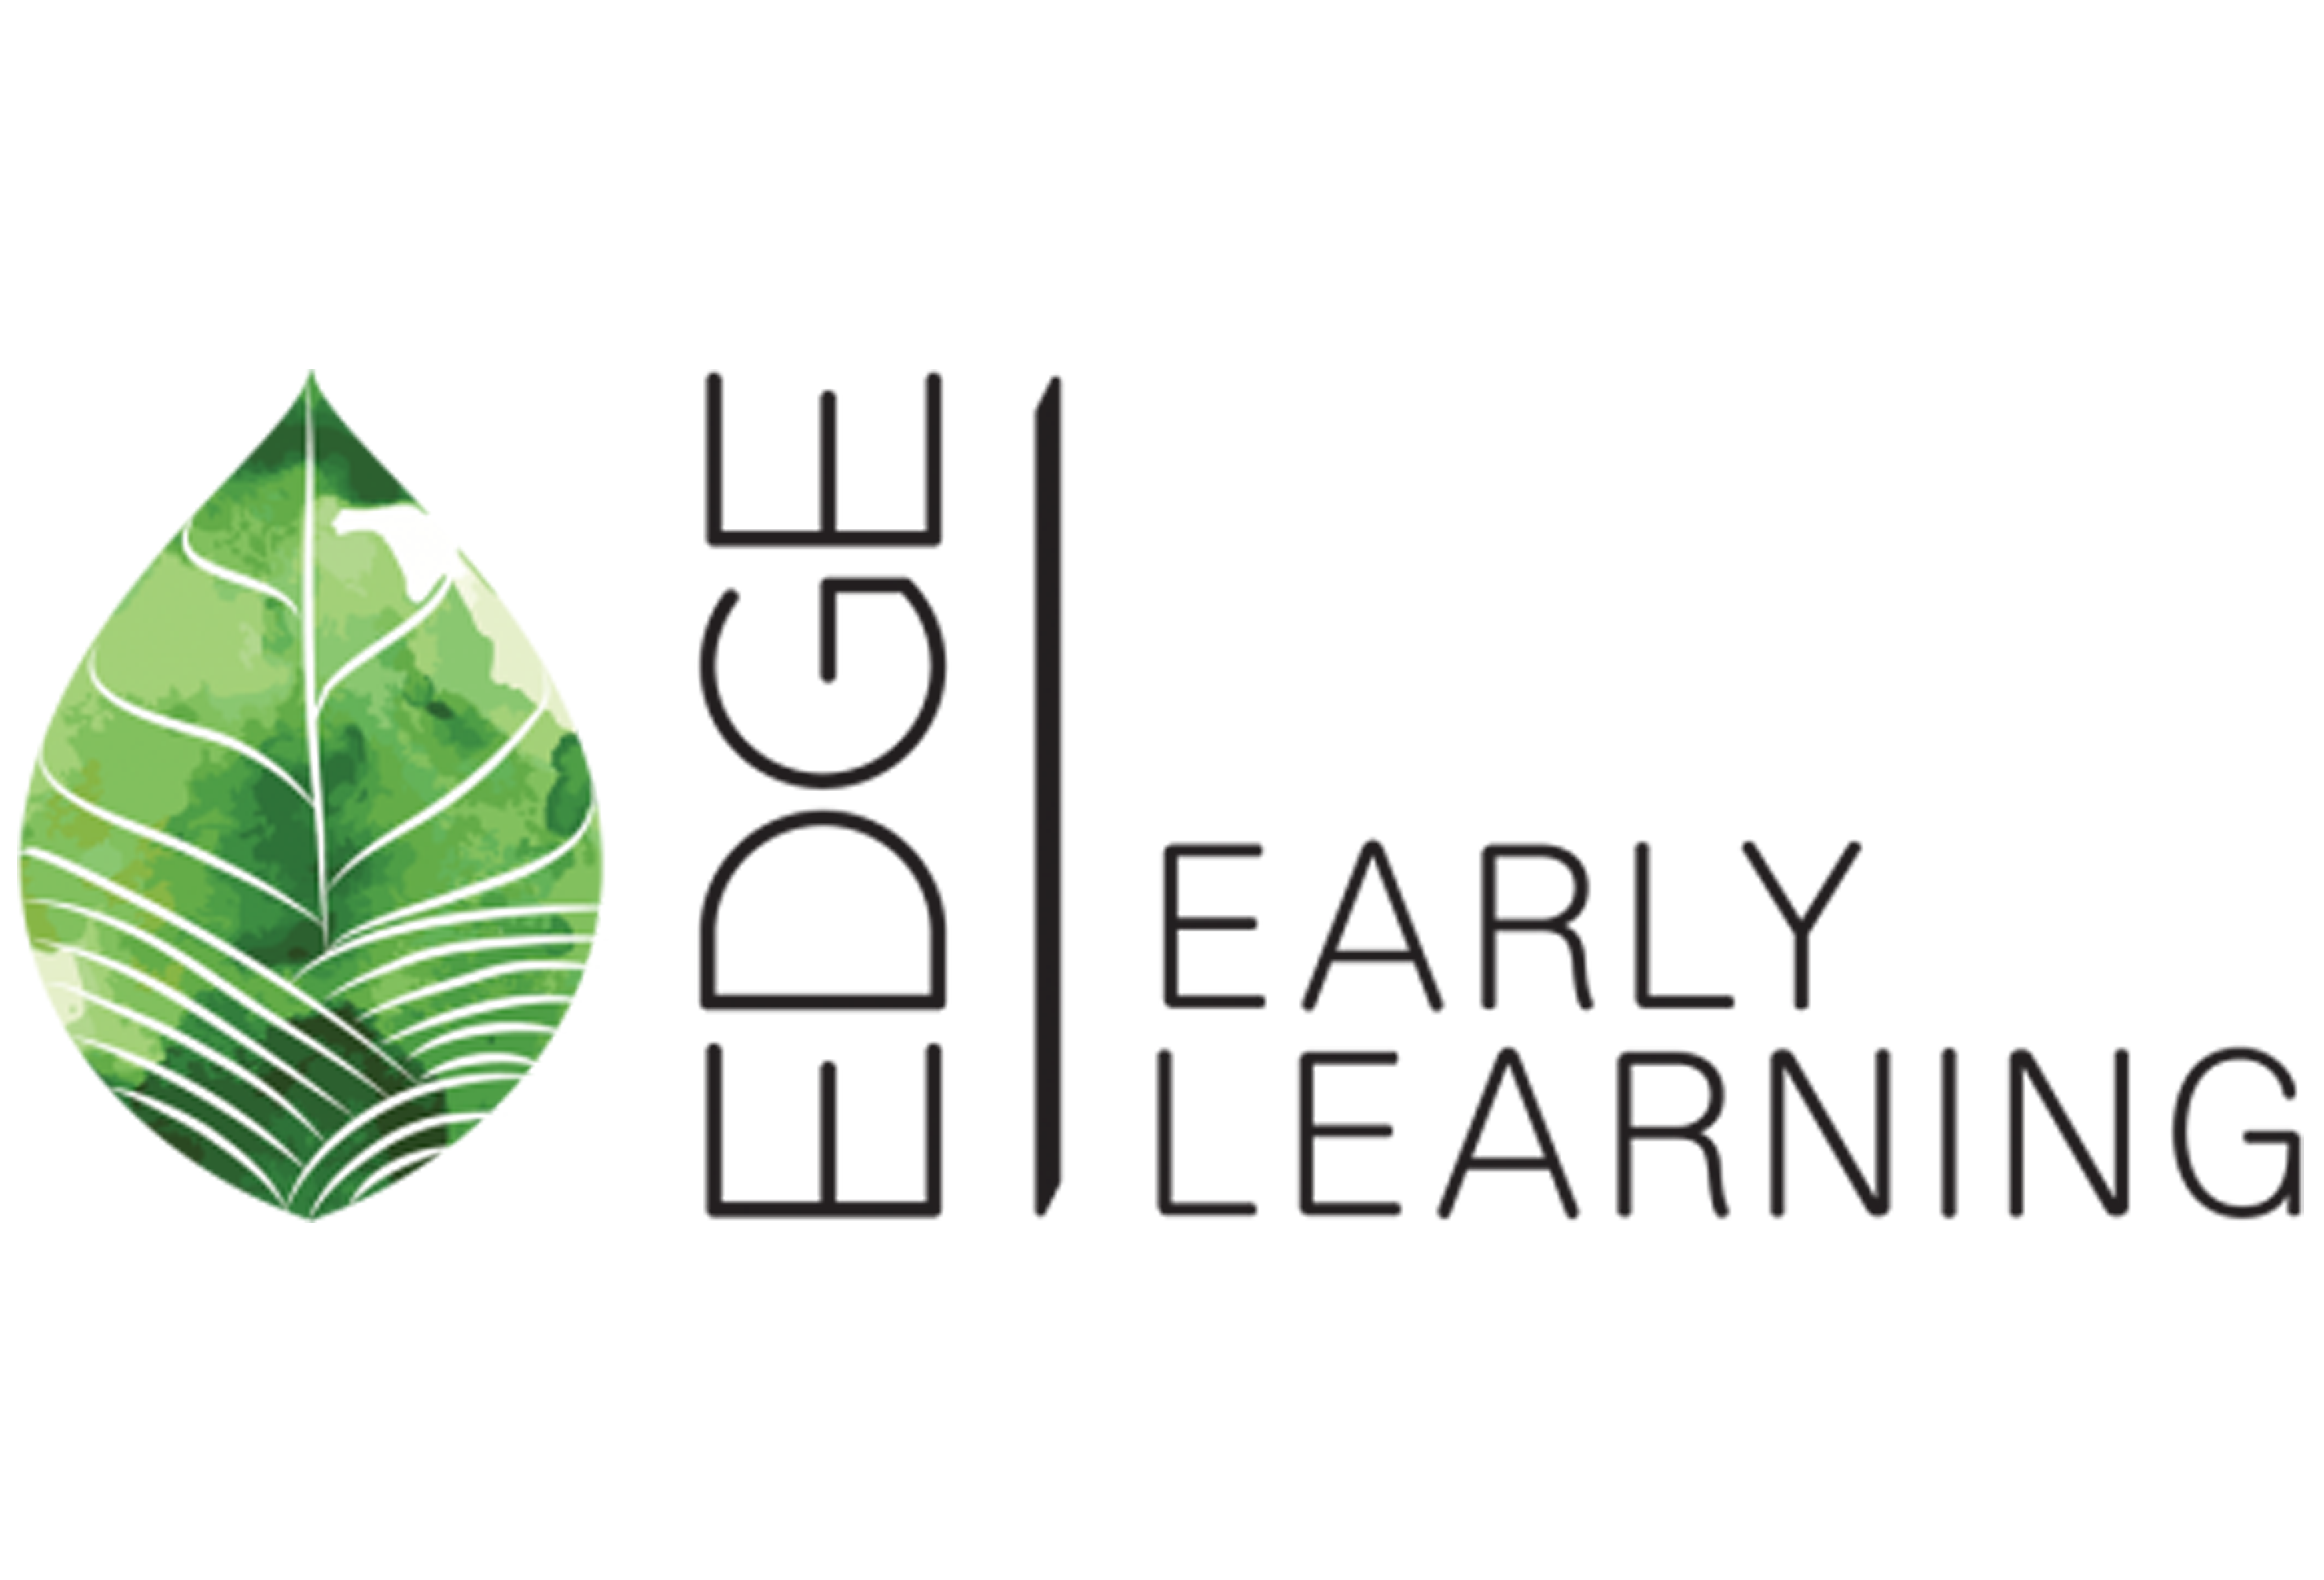 Edge Early Learning large logo